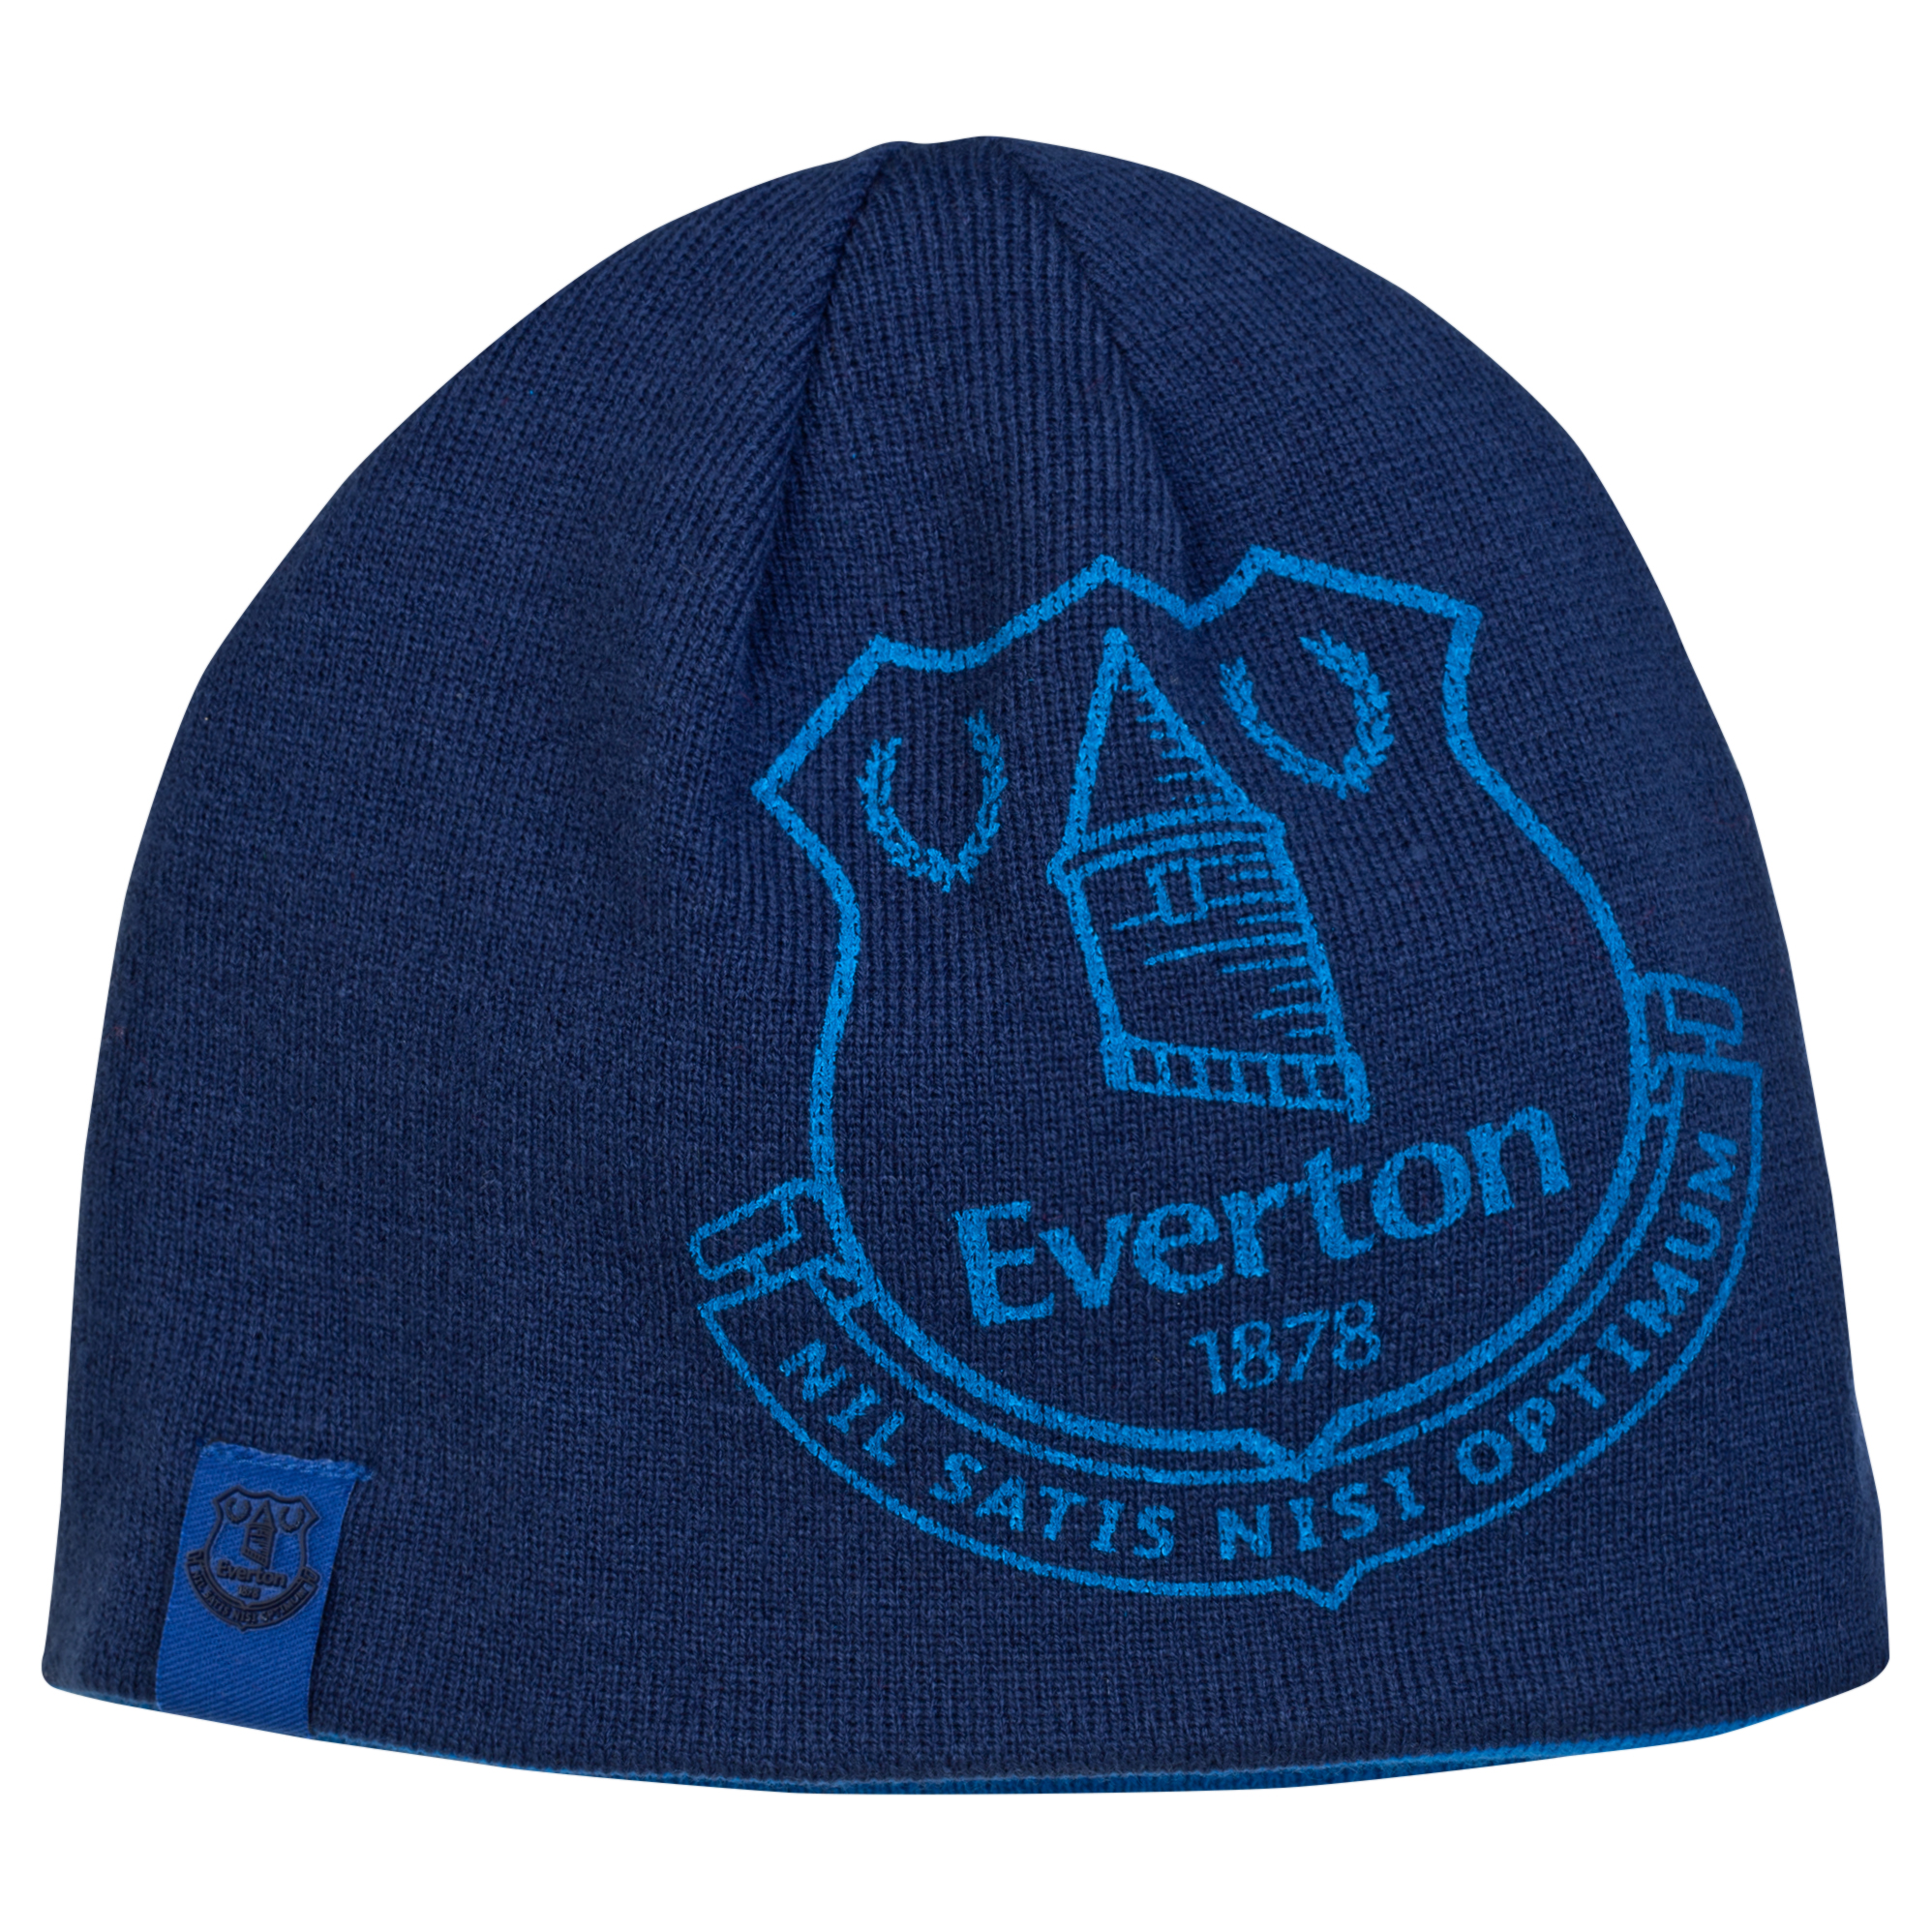 Everton Reverse Hat - Royal Blue/Navy - Junior